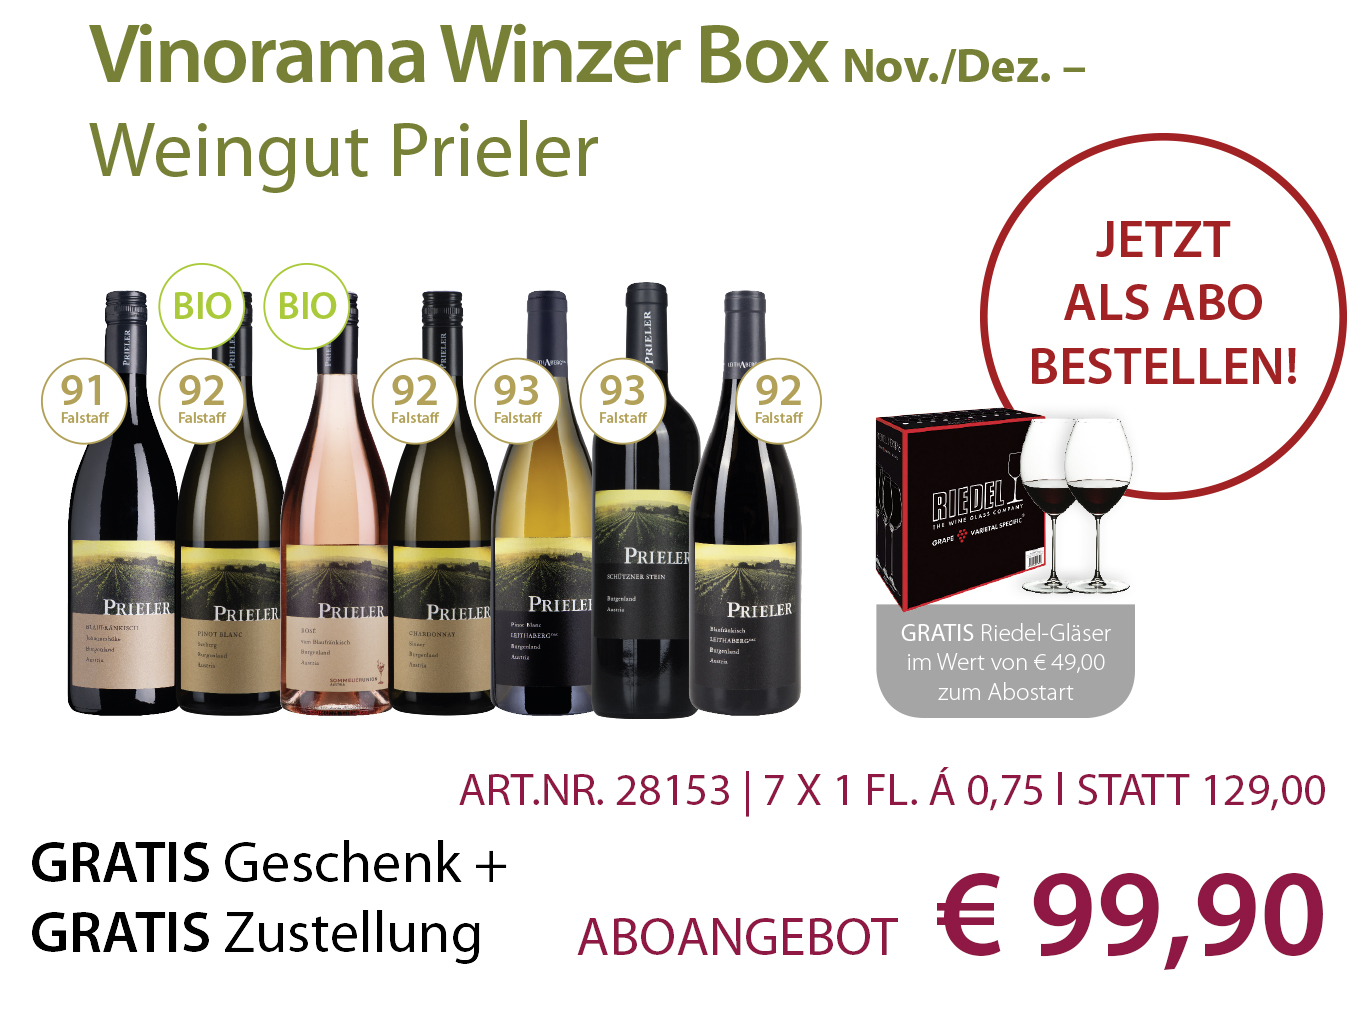 Vinorama Winzer Box Abo